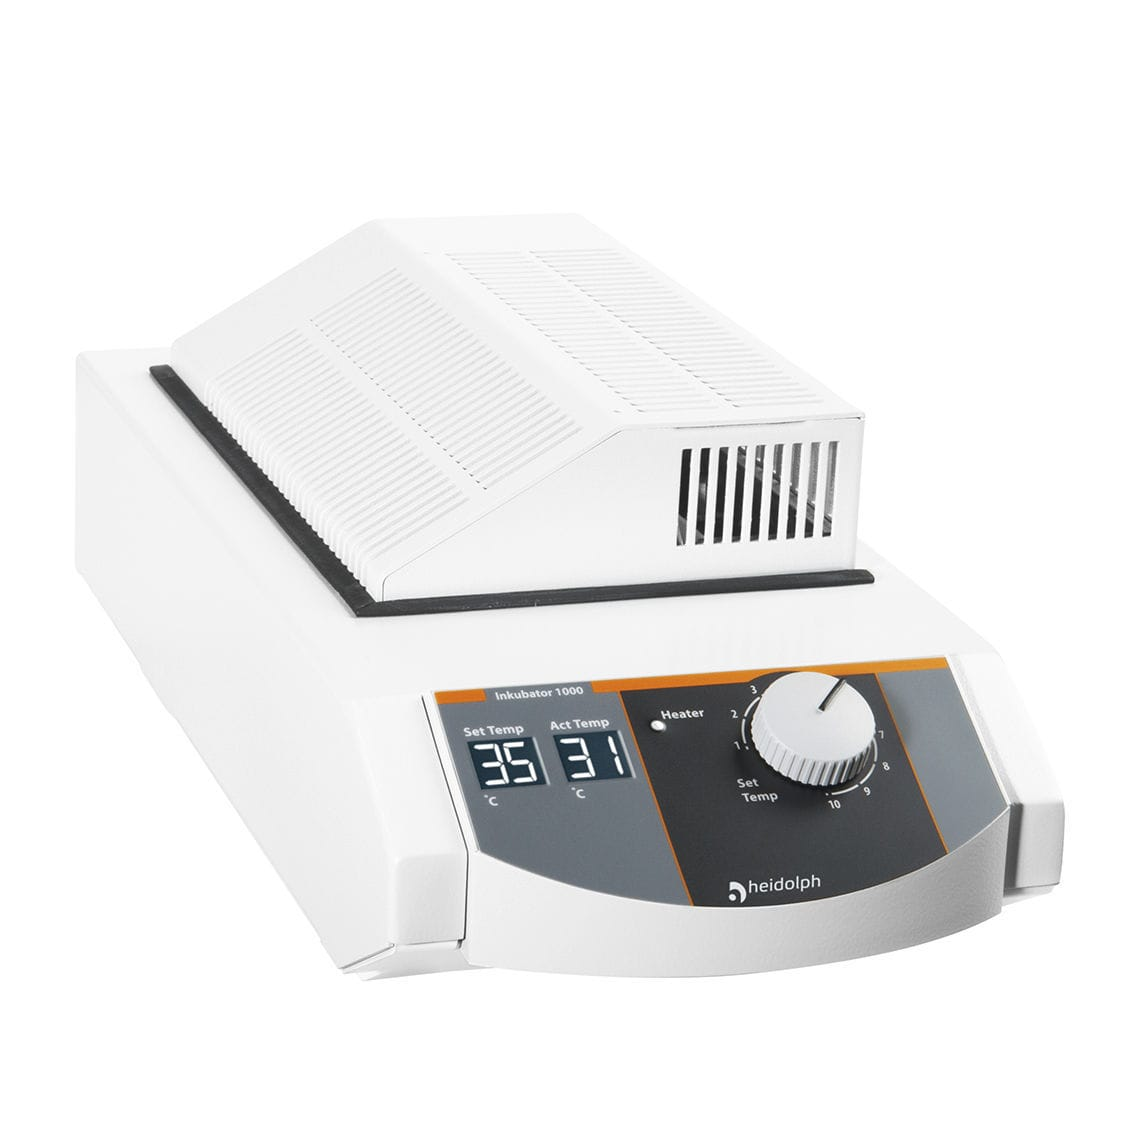 Incubator 1000 Heating Module and Accessories, Heidolph